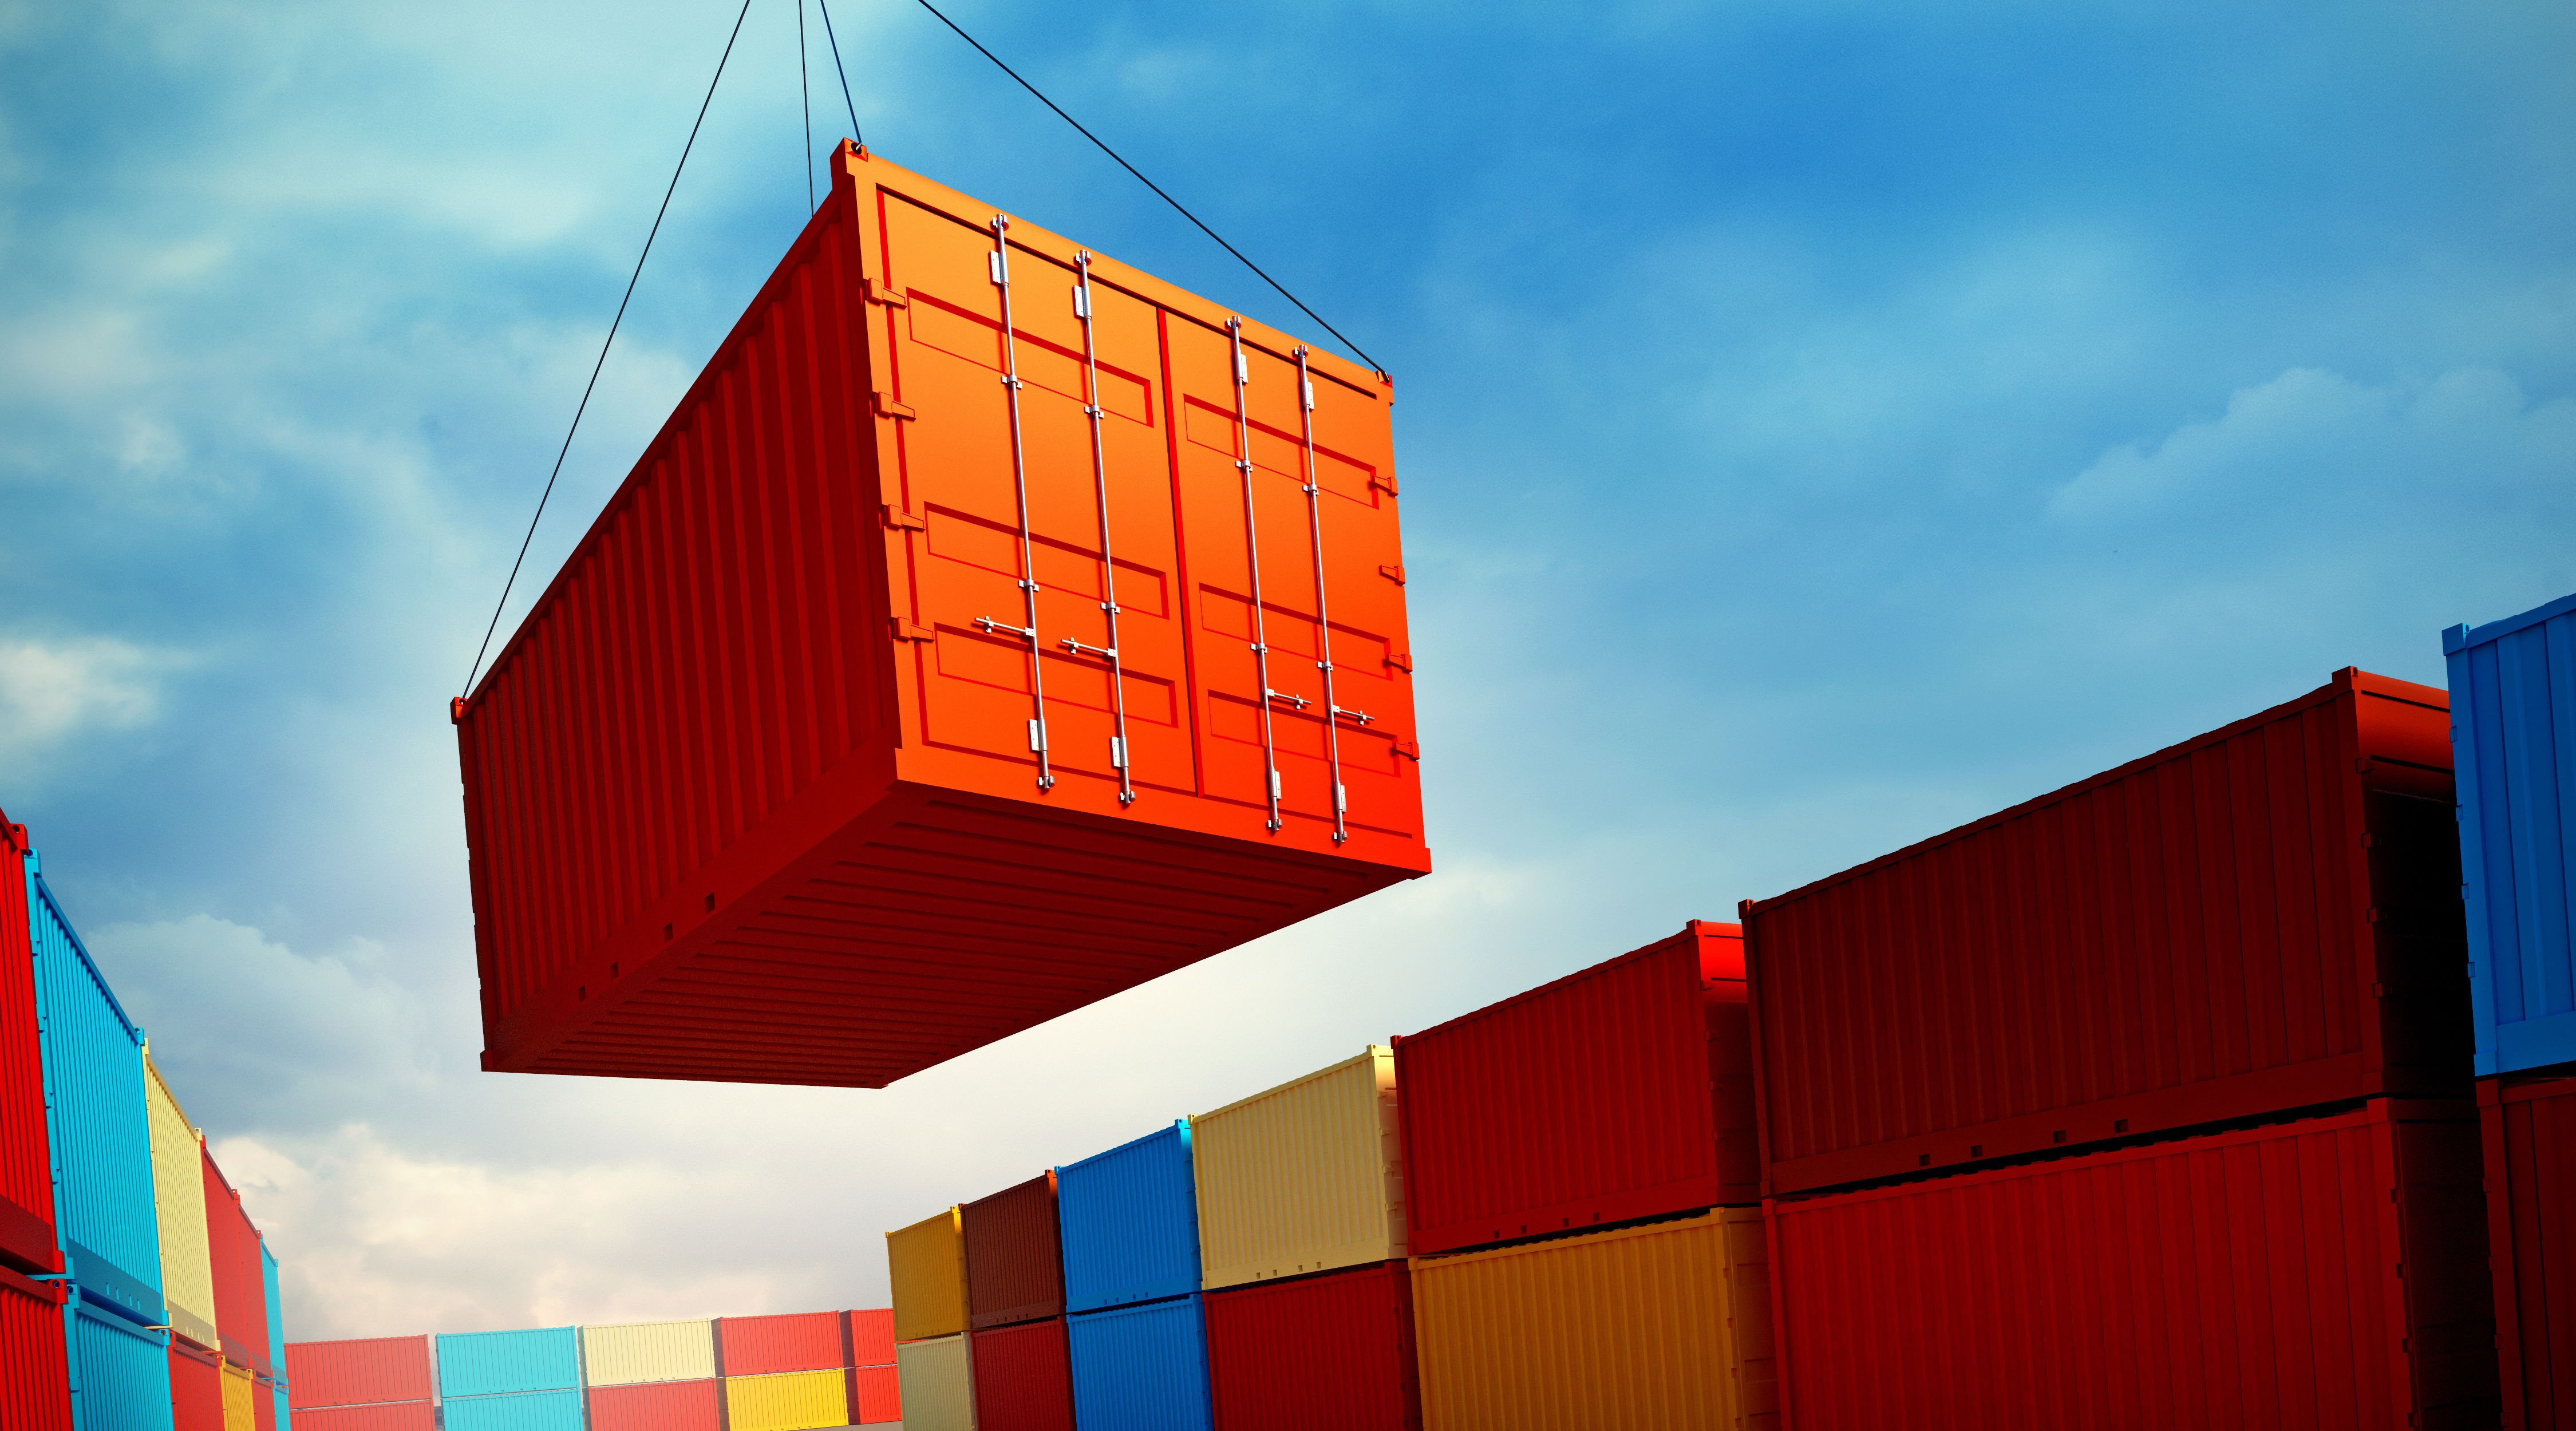 Importing Container Goods Need Customs Clearance Packairs Customs Brokers Have